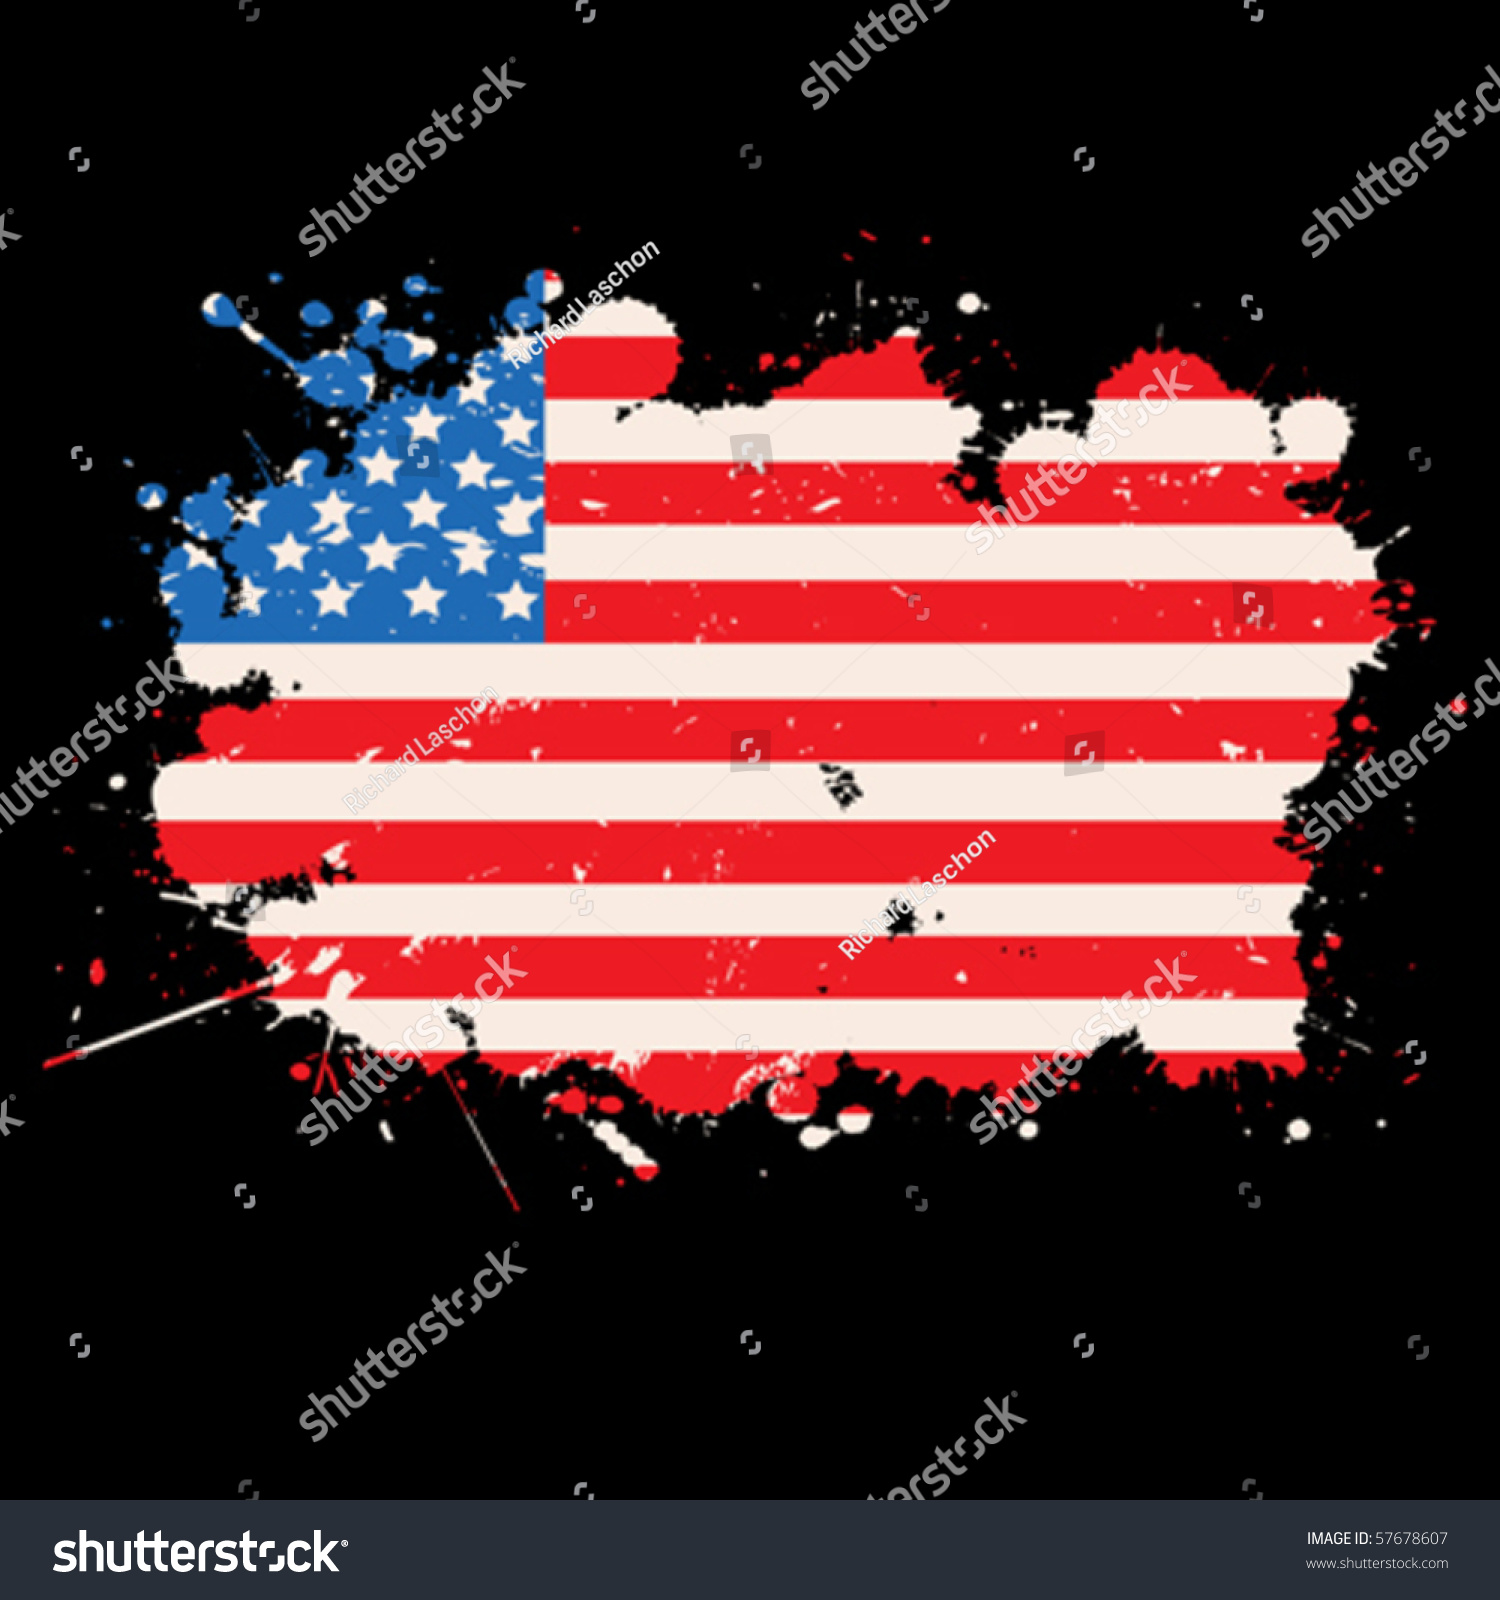 stock-vector-usa-grunge-flag-over-black-